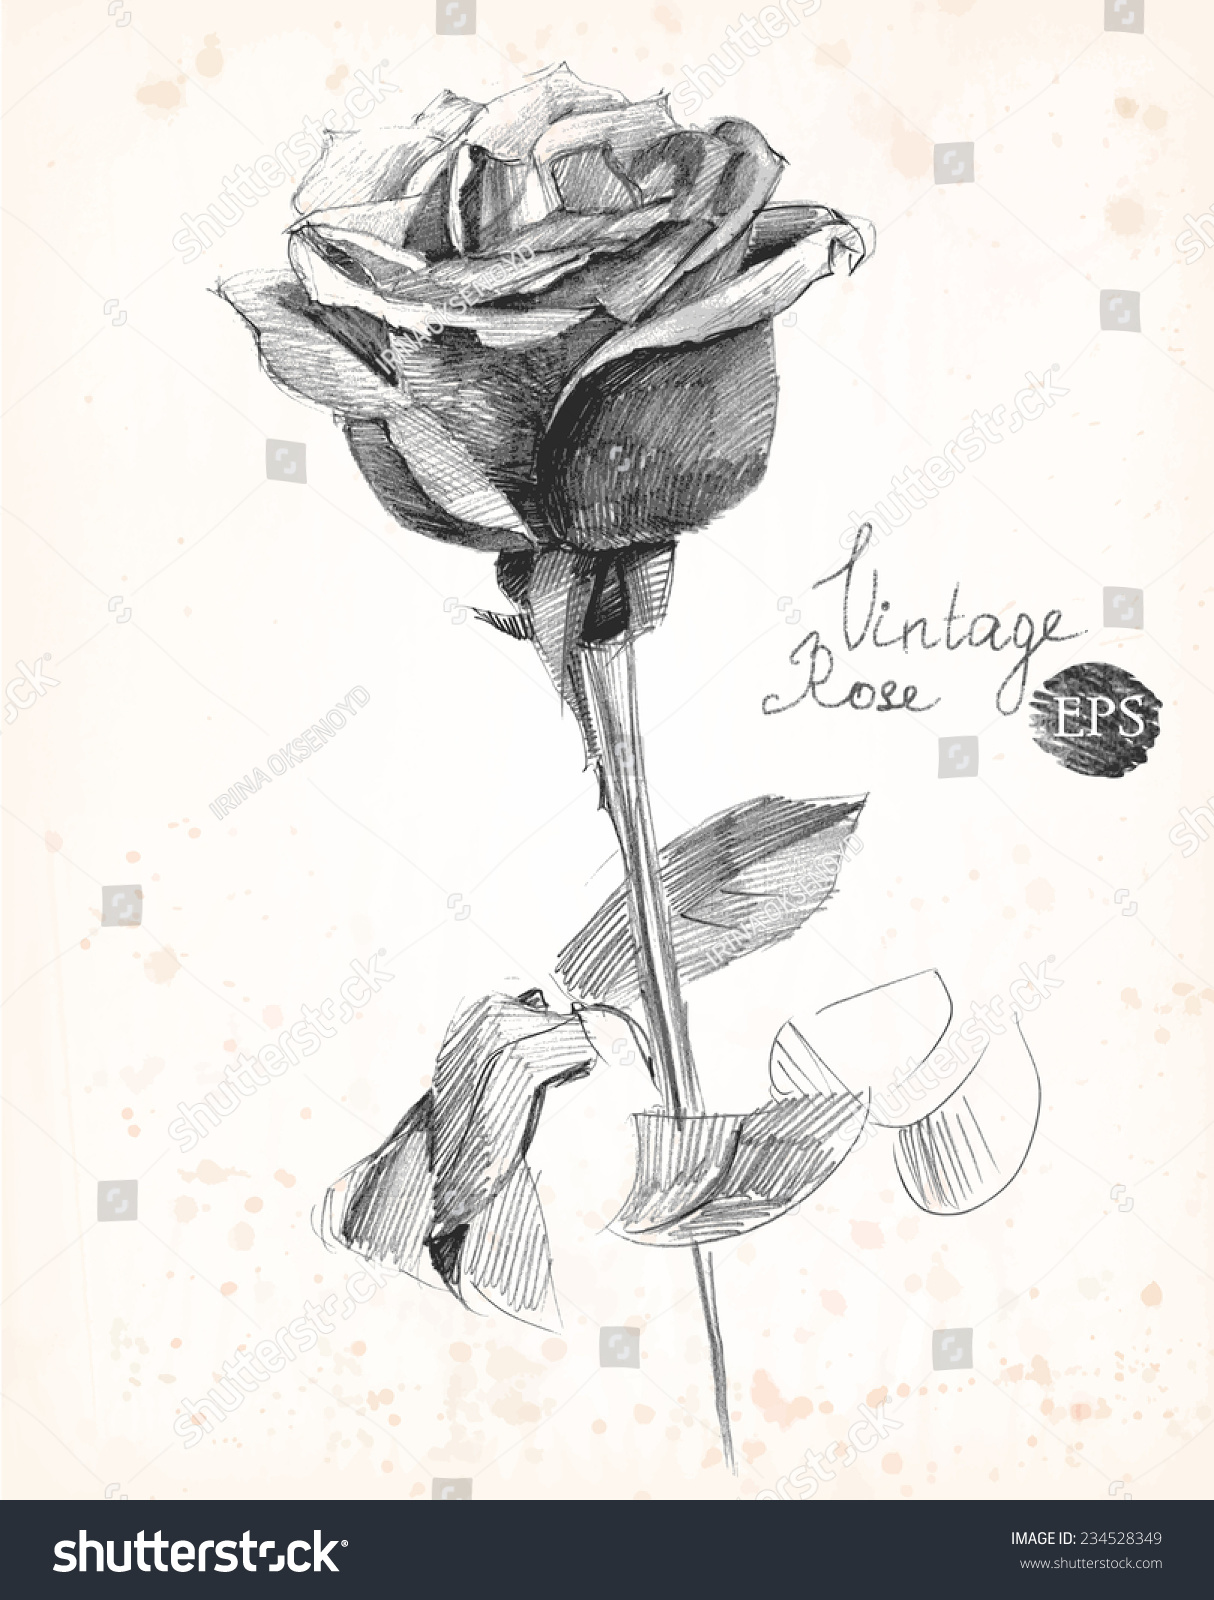 Hand drawn pencil sketch of a rose vintage style vector illustration